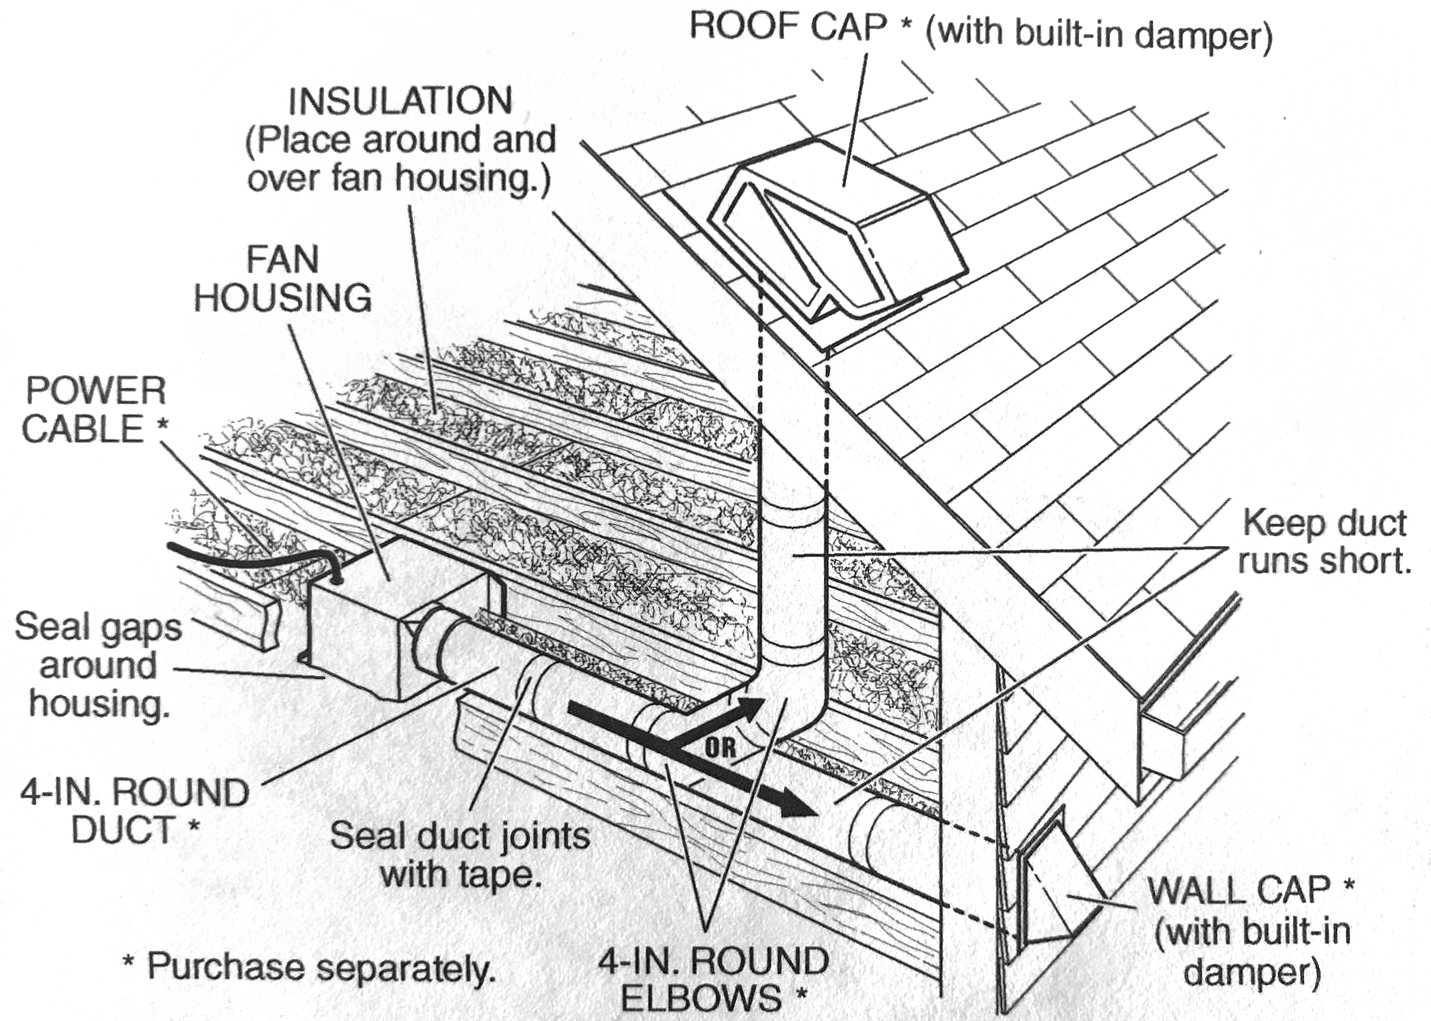 Bathroom Ventilation Fan Duct Lengths: What are the ...